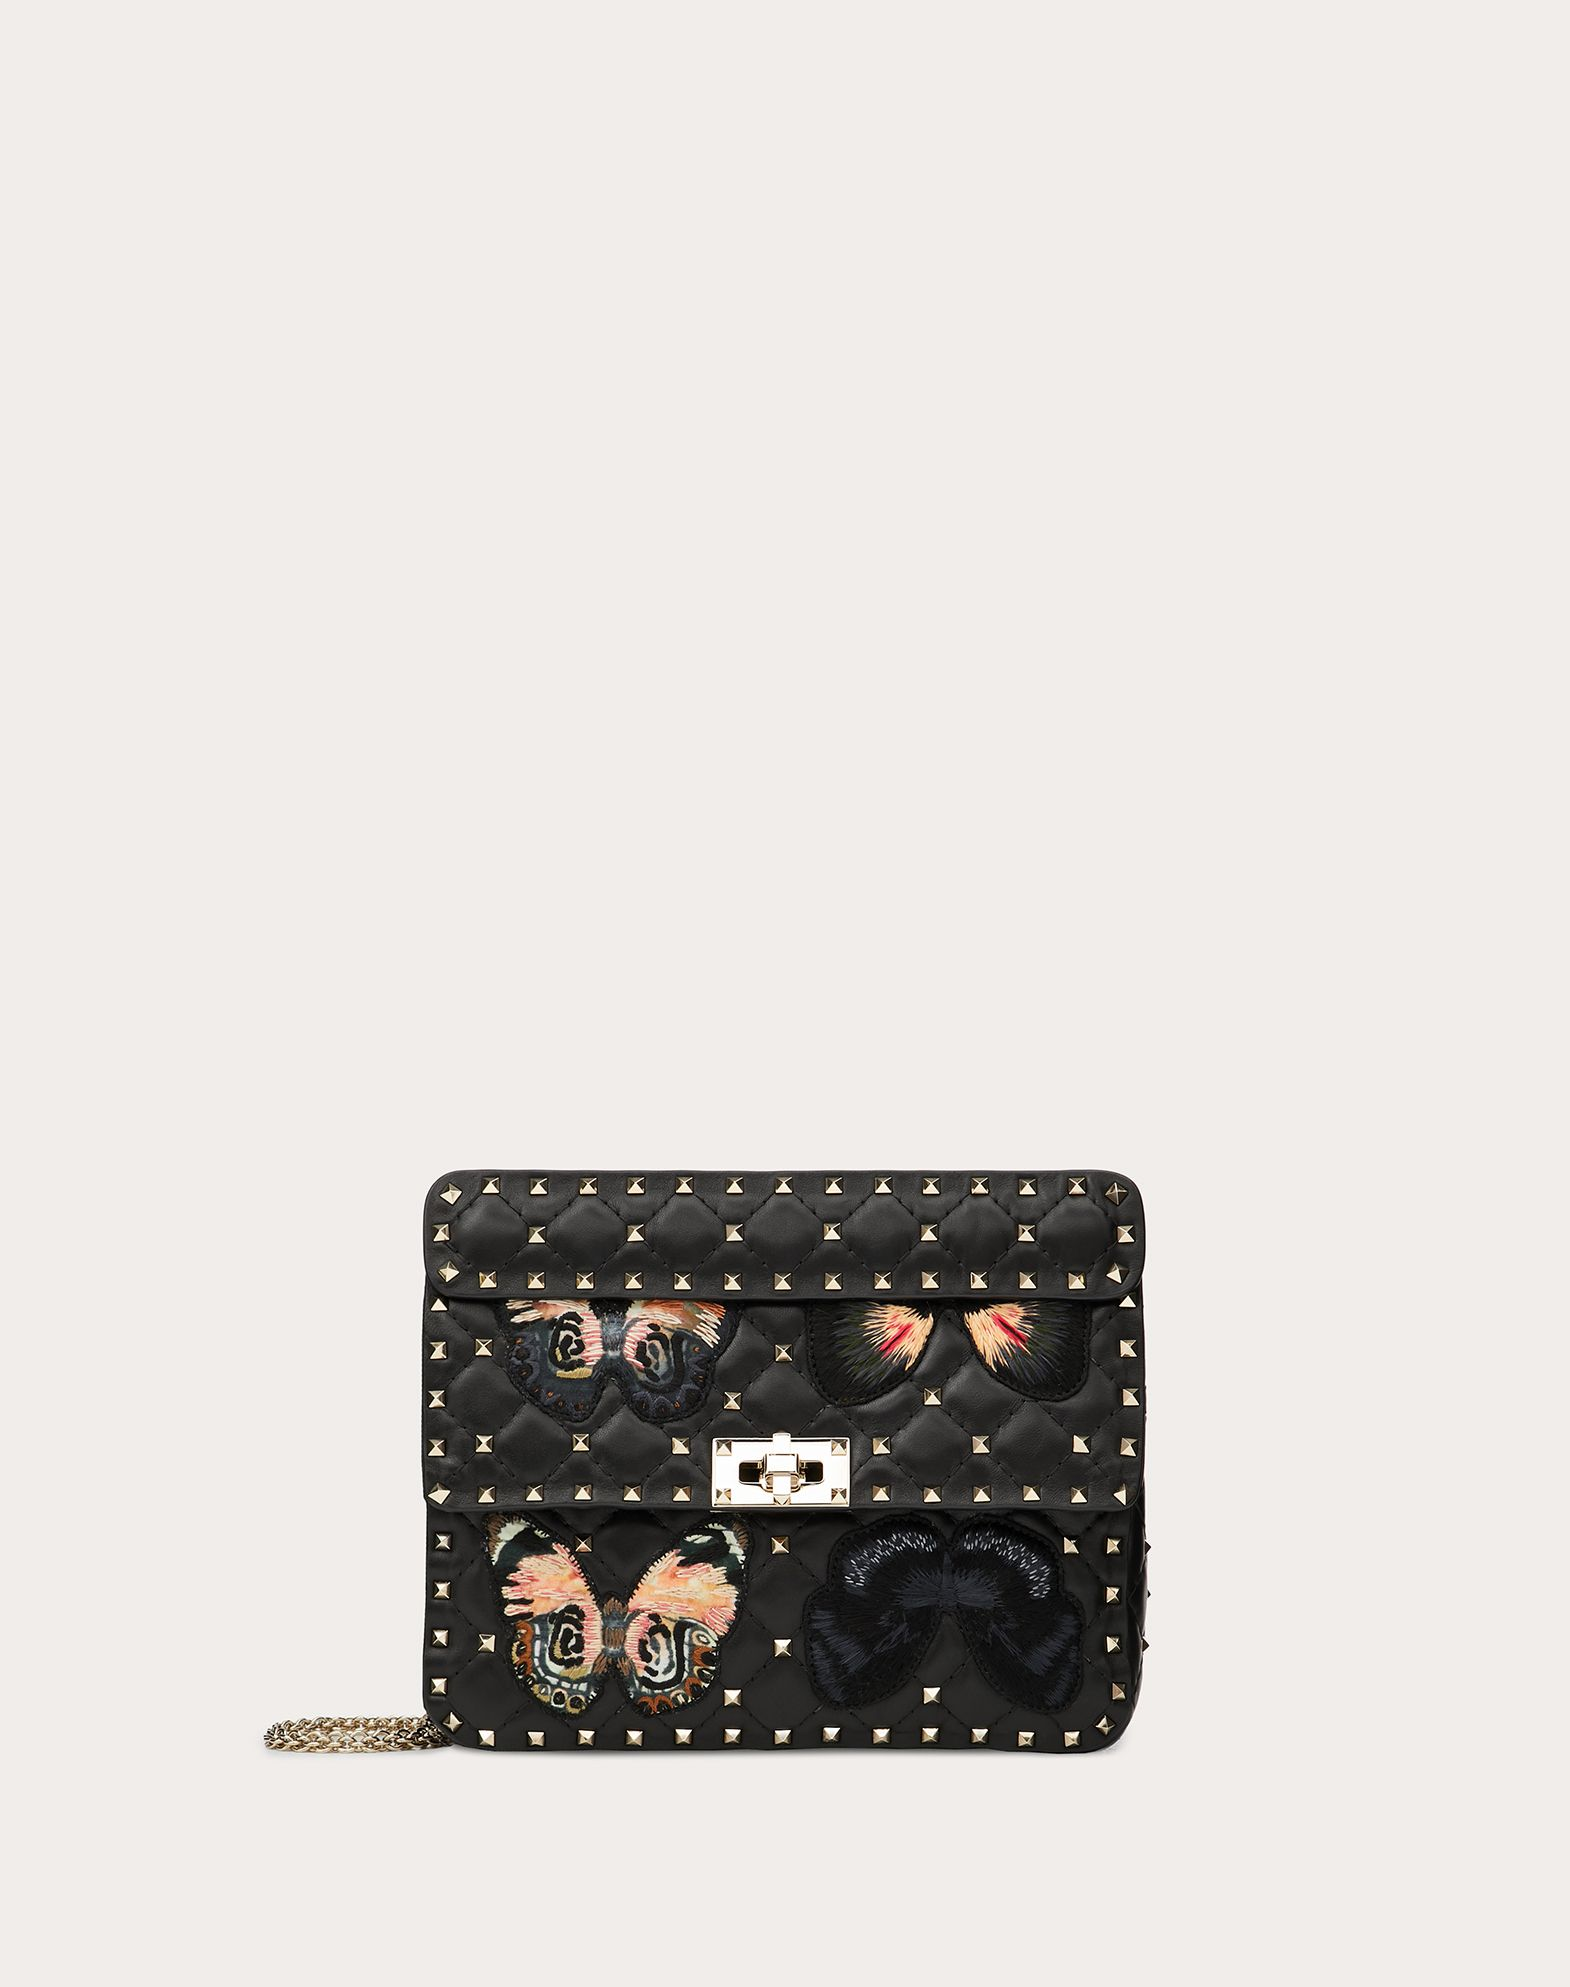 Medium Rockstud Spike.It Bag with Butterfly Patches